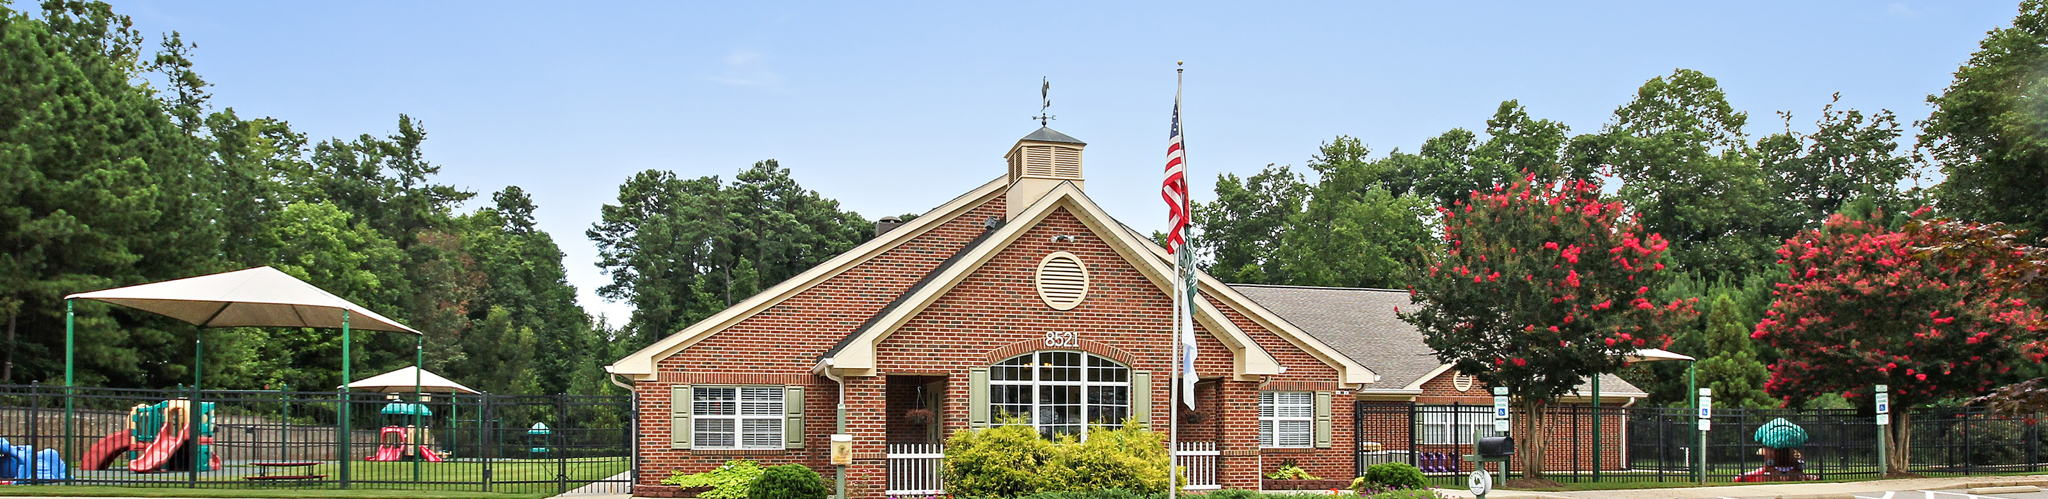 Exterior of a Primrose School of North Raleigh